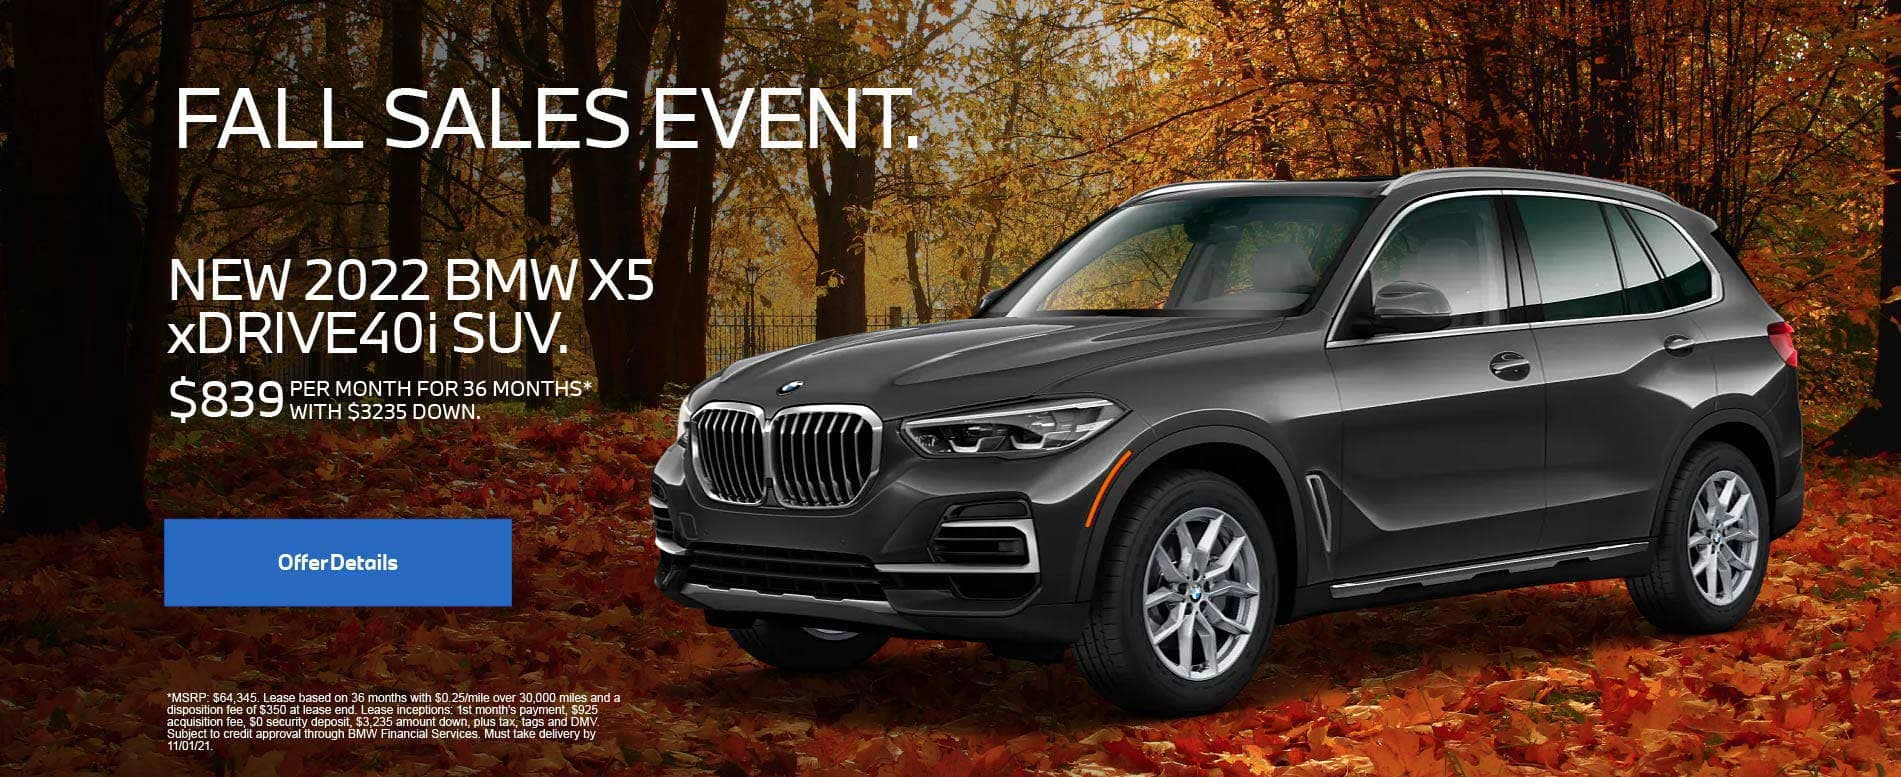 Fall Sales Event. New 2022 BMW X5 xDRIVE 40i SUV. $839 Per Month for 36 months with $3235 down.